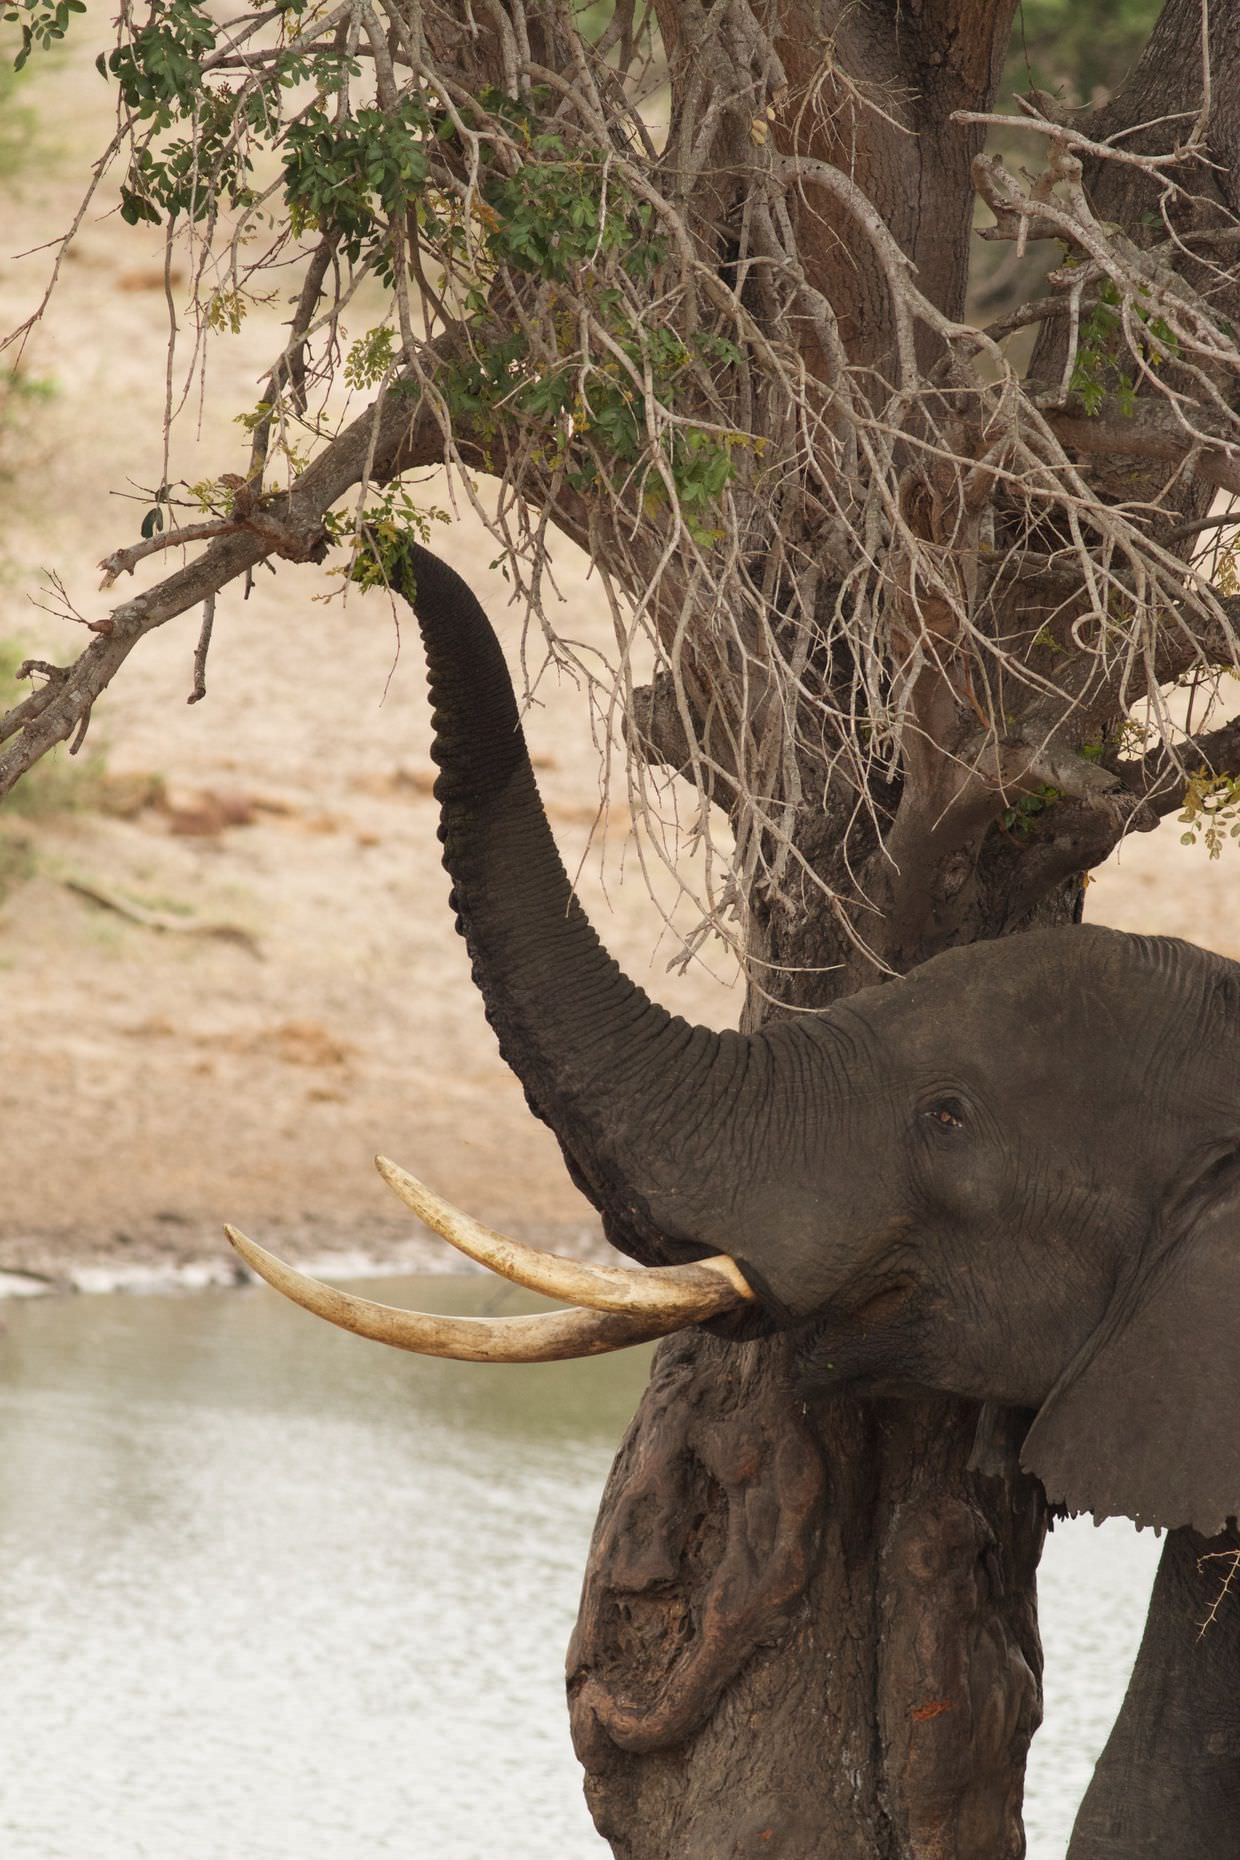 An elephant feeding at Mahlasela hide